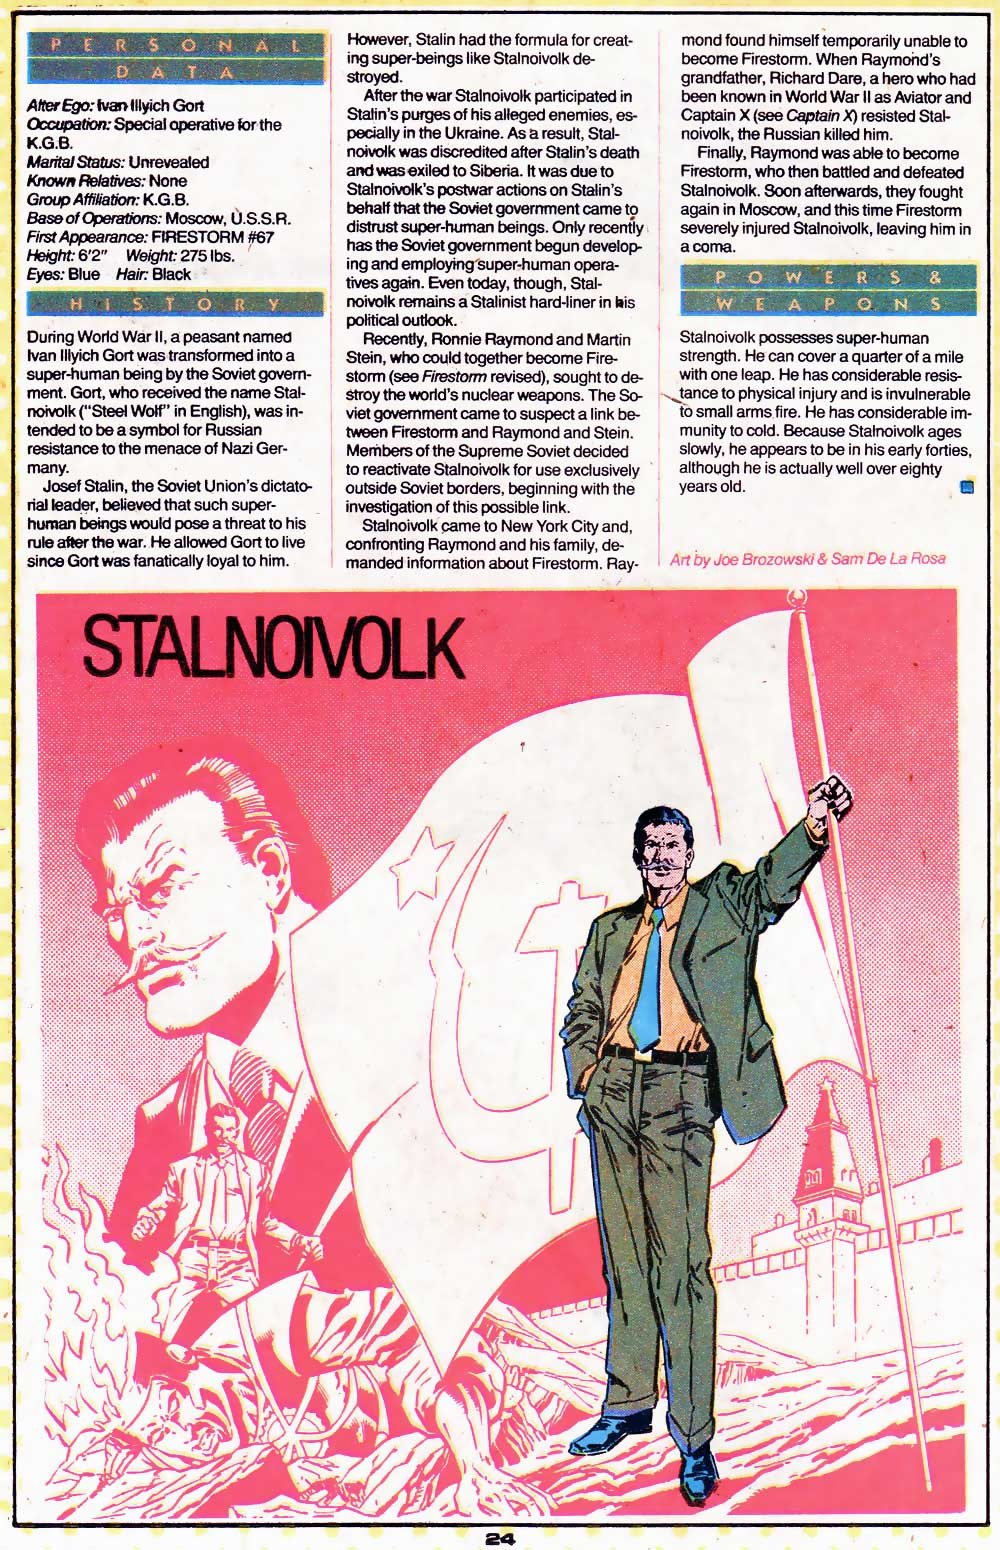 Who's Who Update 88 Stalnoivolk by Joe Brozowski and Sam De La Rosa